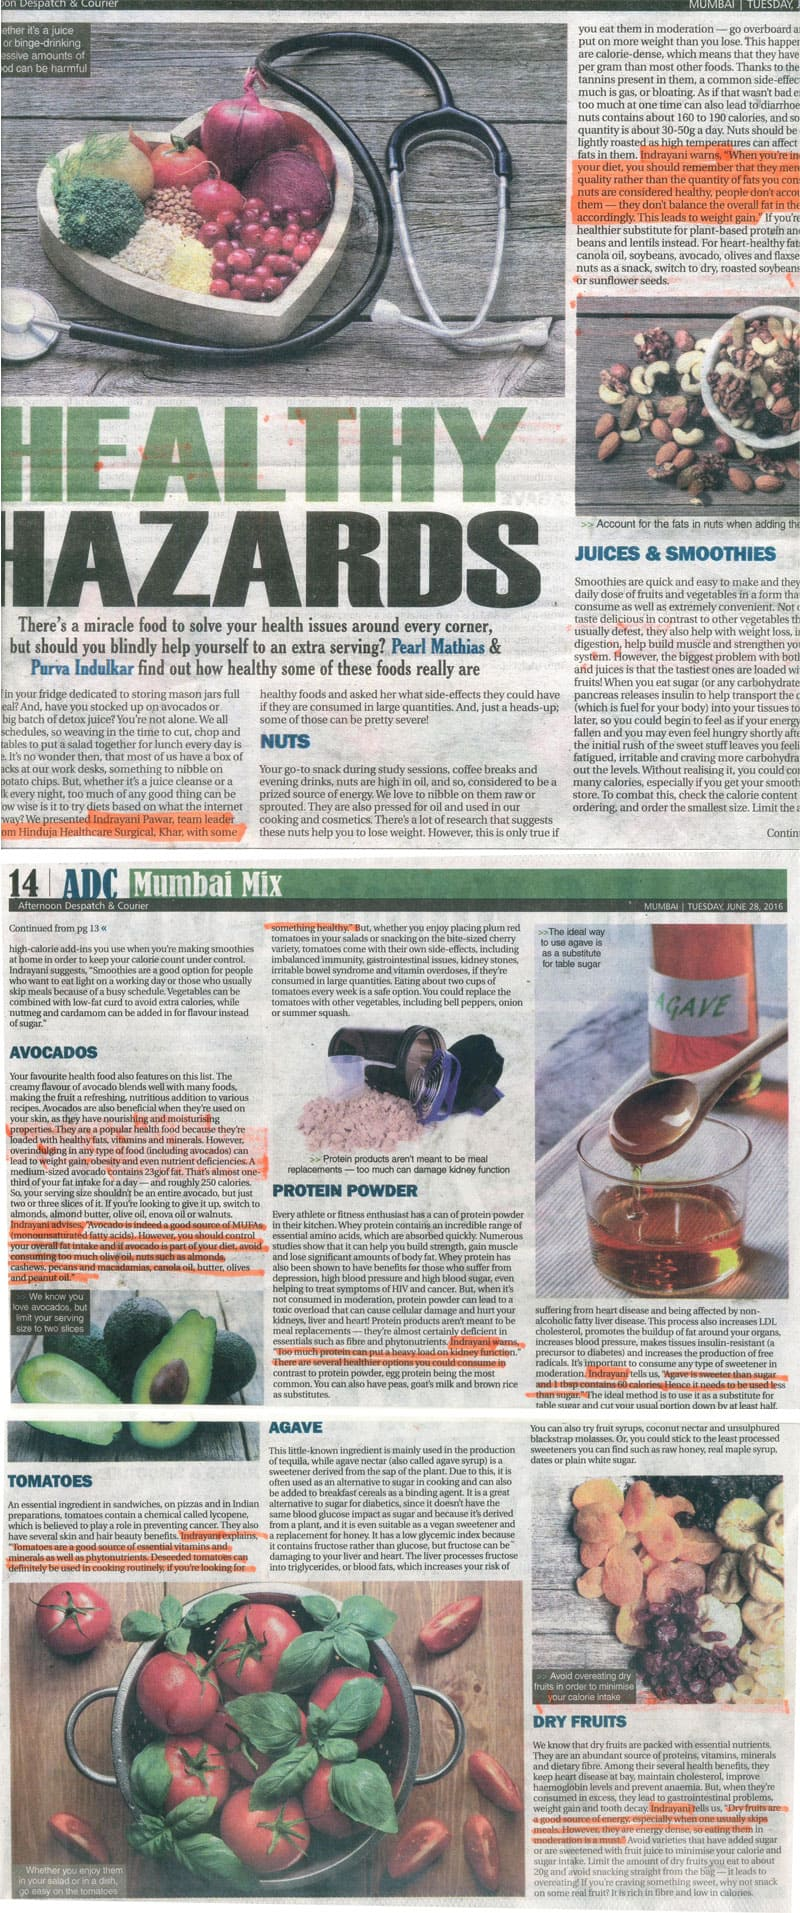 Hinduja HealthCare - Healthy Hazards